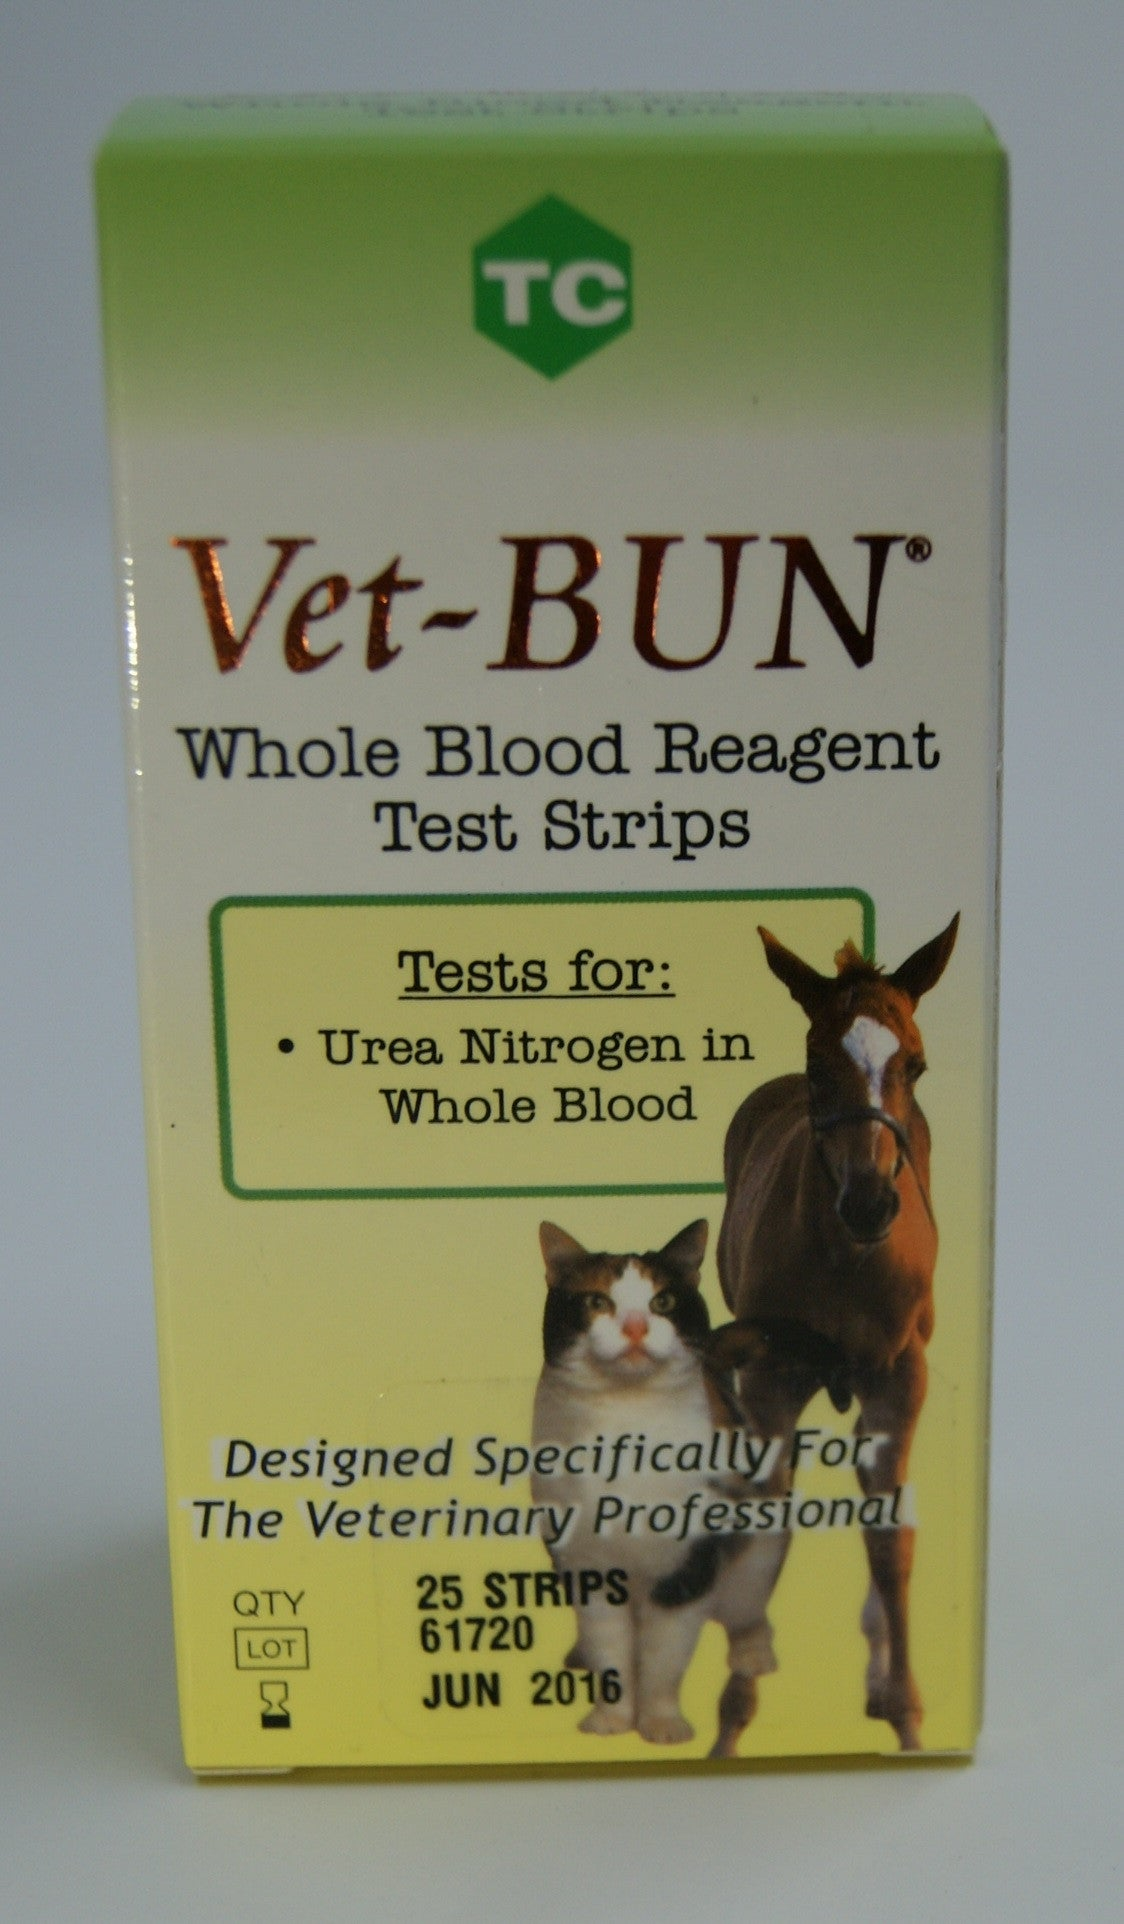 Vet-BUN Whole Blood Test Kit